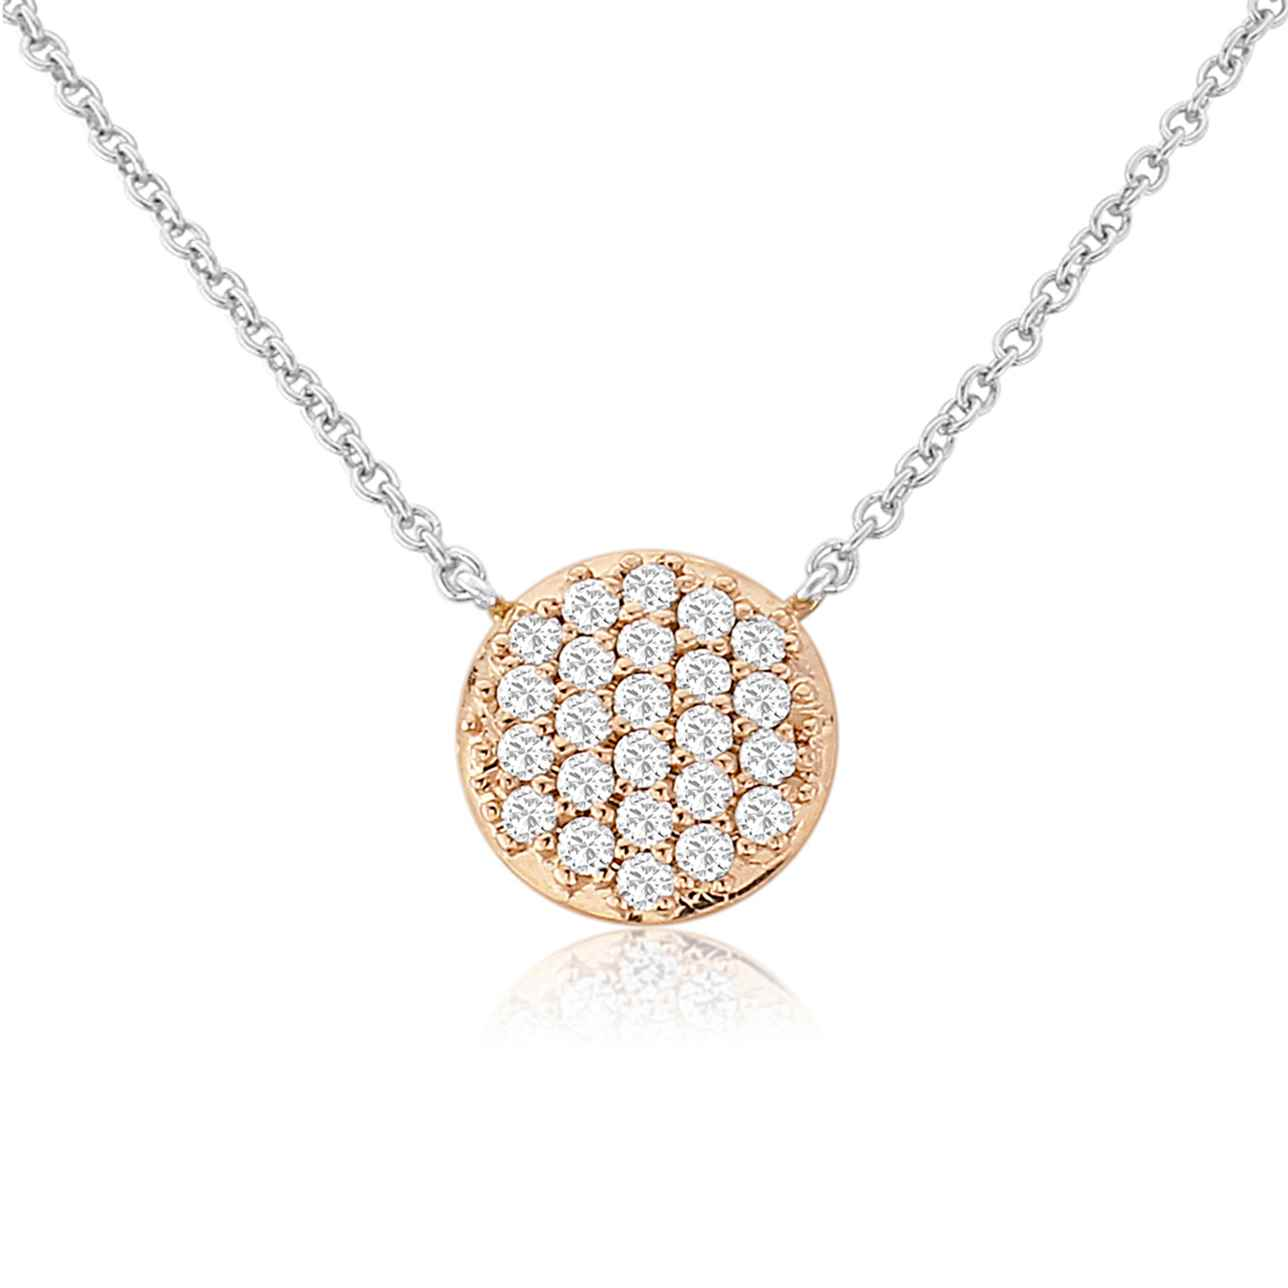 Small Rose Circle Pendant with Multi Cubic Zirconia Discs